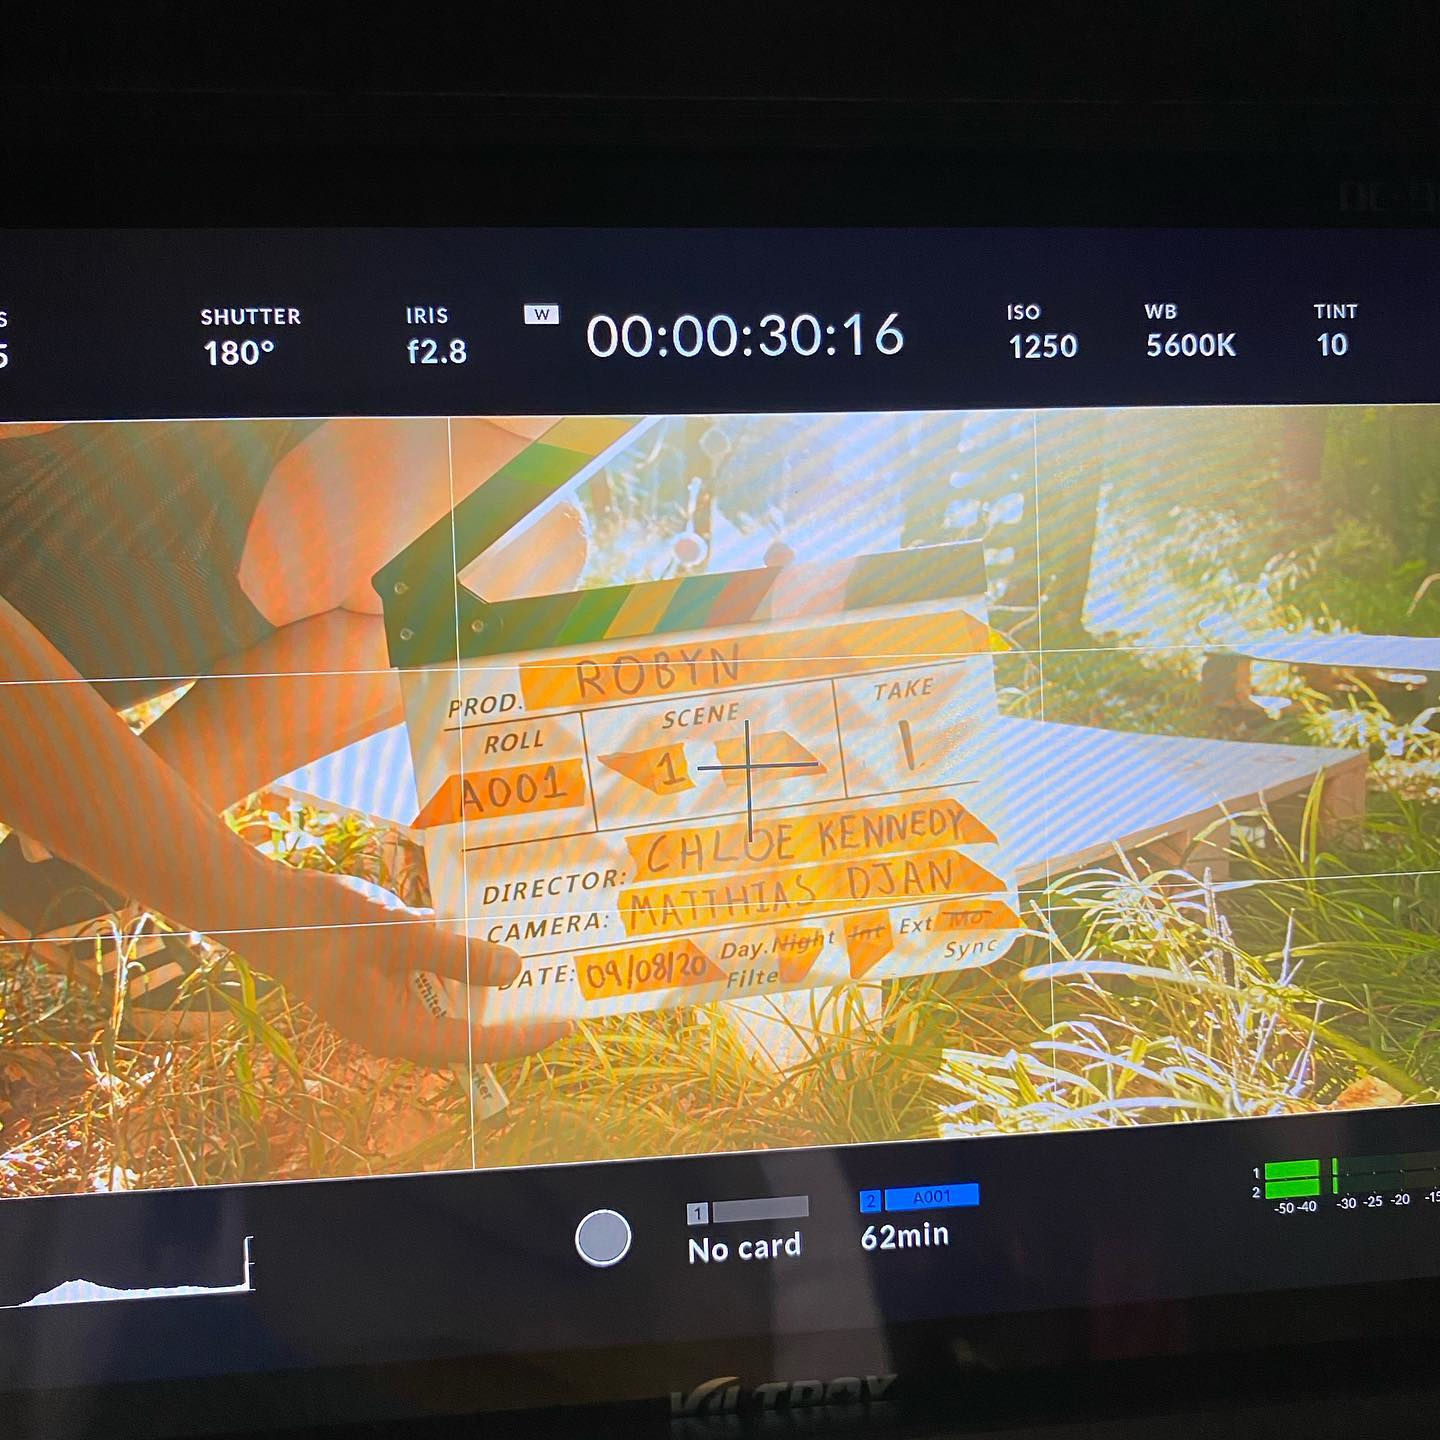 Behind the scenes image from short film Robyn showing a director's monitor displaying a clapperboard/slate